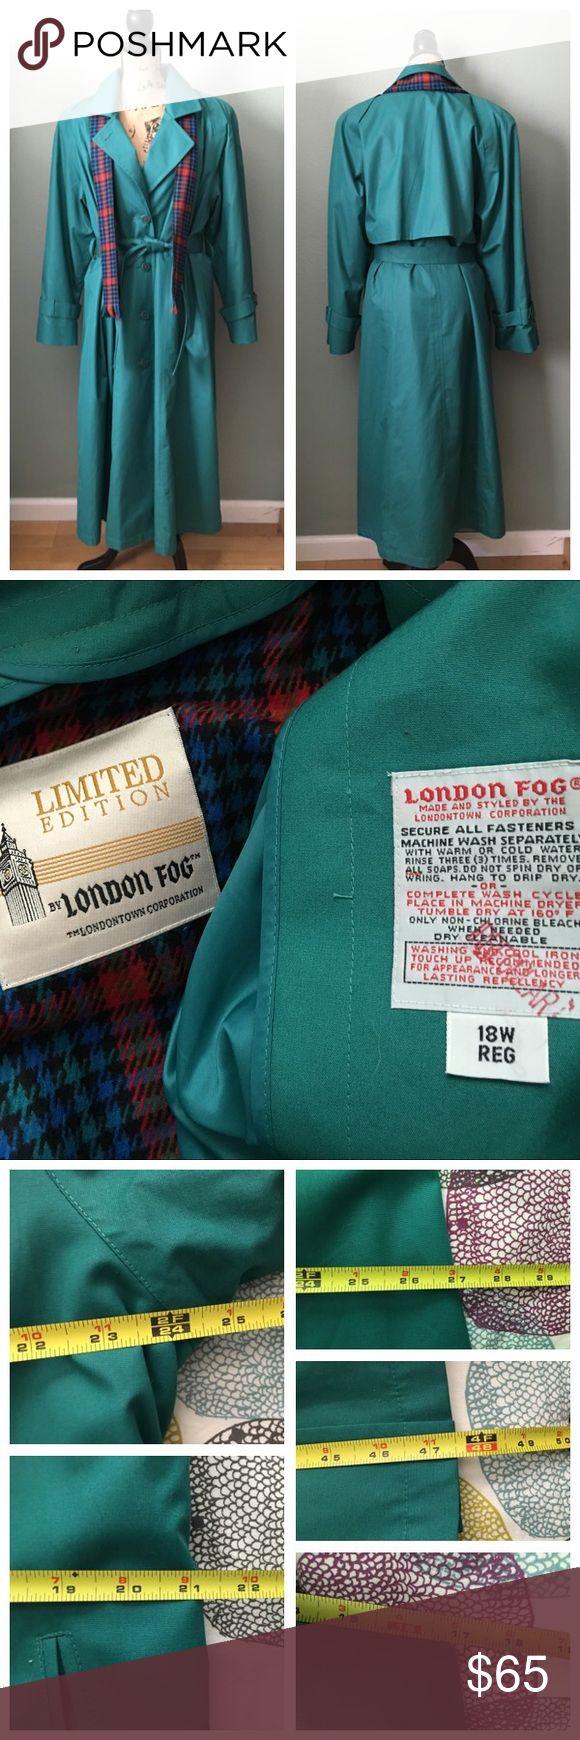 """London Fog green trench coat w/ scarf! Size 18W London Fog green trench coat with matching scarf! Size 18W. As seen above, the tag is stamped irregular, but I cannot find any issues that would warrant the stamp. The lining matches the scarf (see photo above). The lining can be removed via zipper. The matching scarf is still attached by the store's plastic tag. Buttons up the front. Belt included. Approximate flat measurements: bust 24"""", waist 21"""", hips 27"""", length 47.5"""", sleeve length 17"""". I…"""